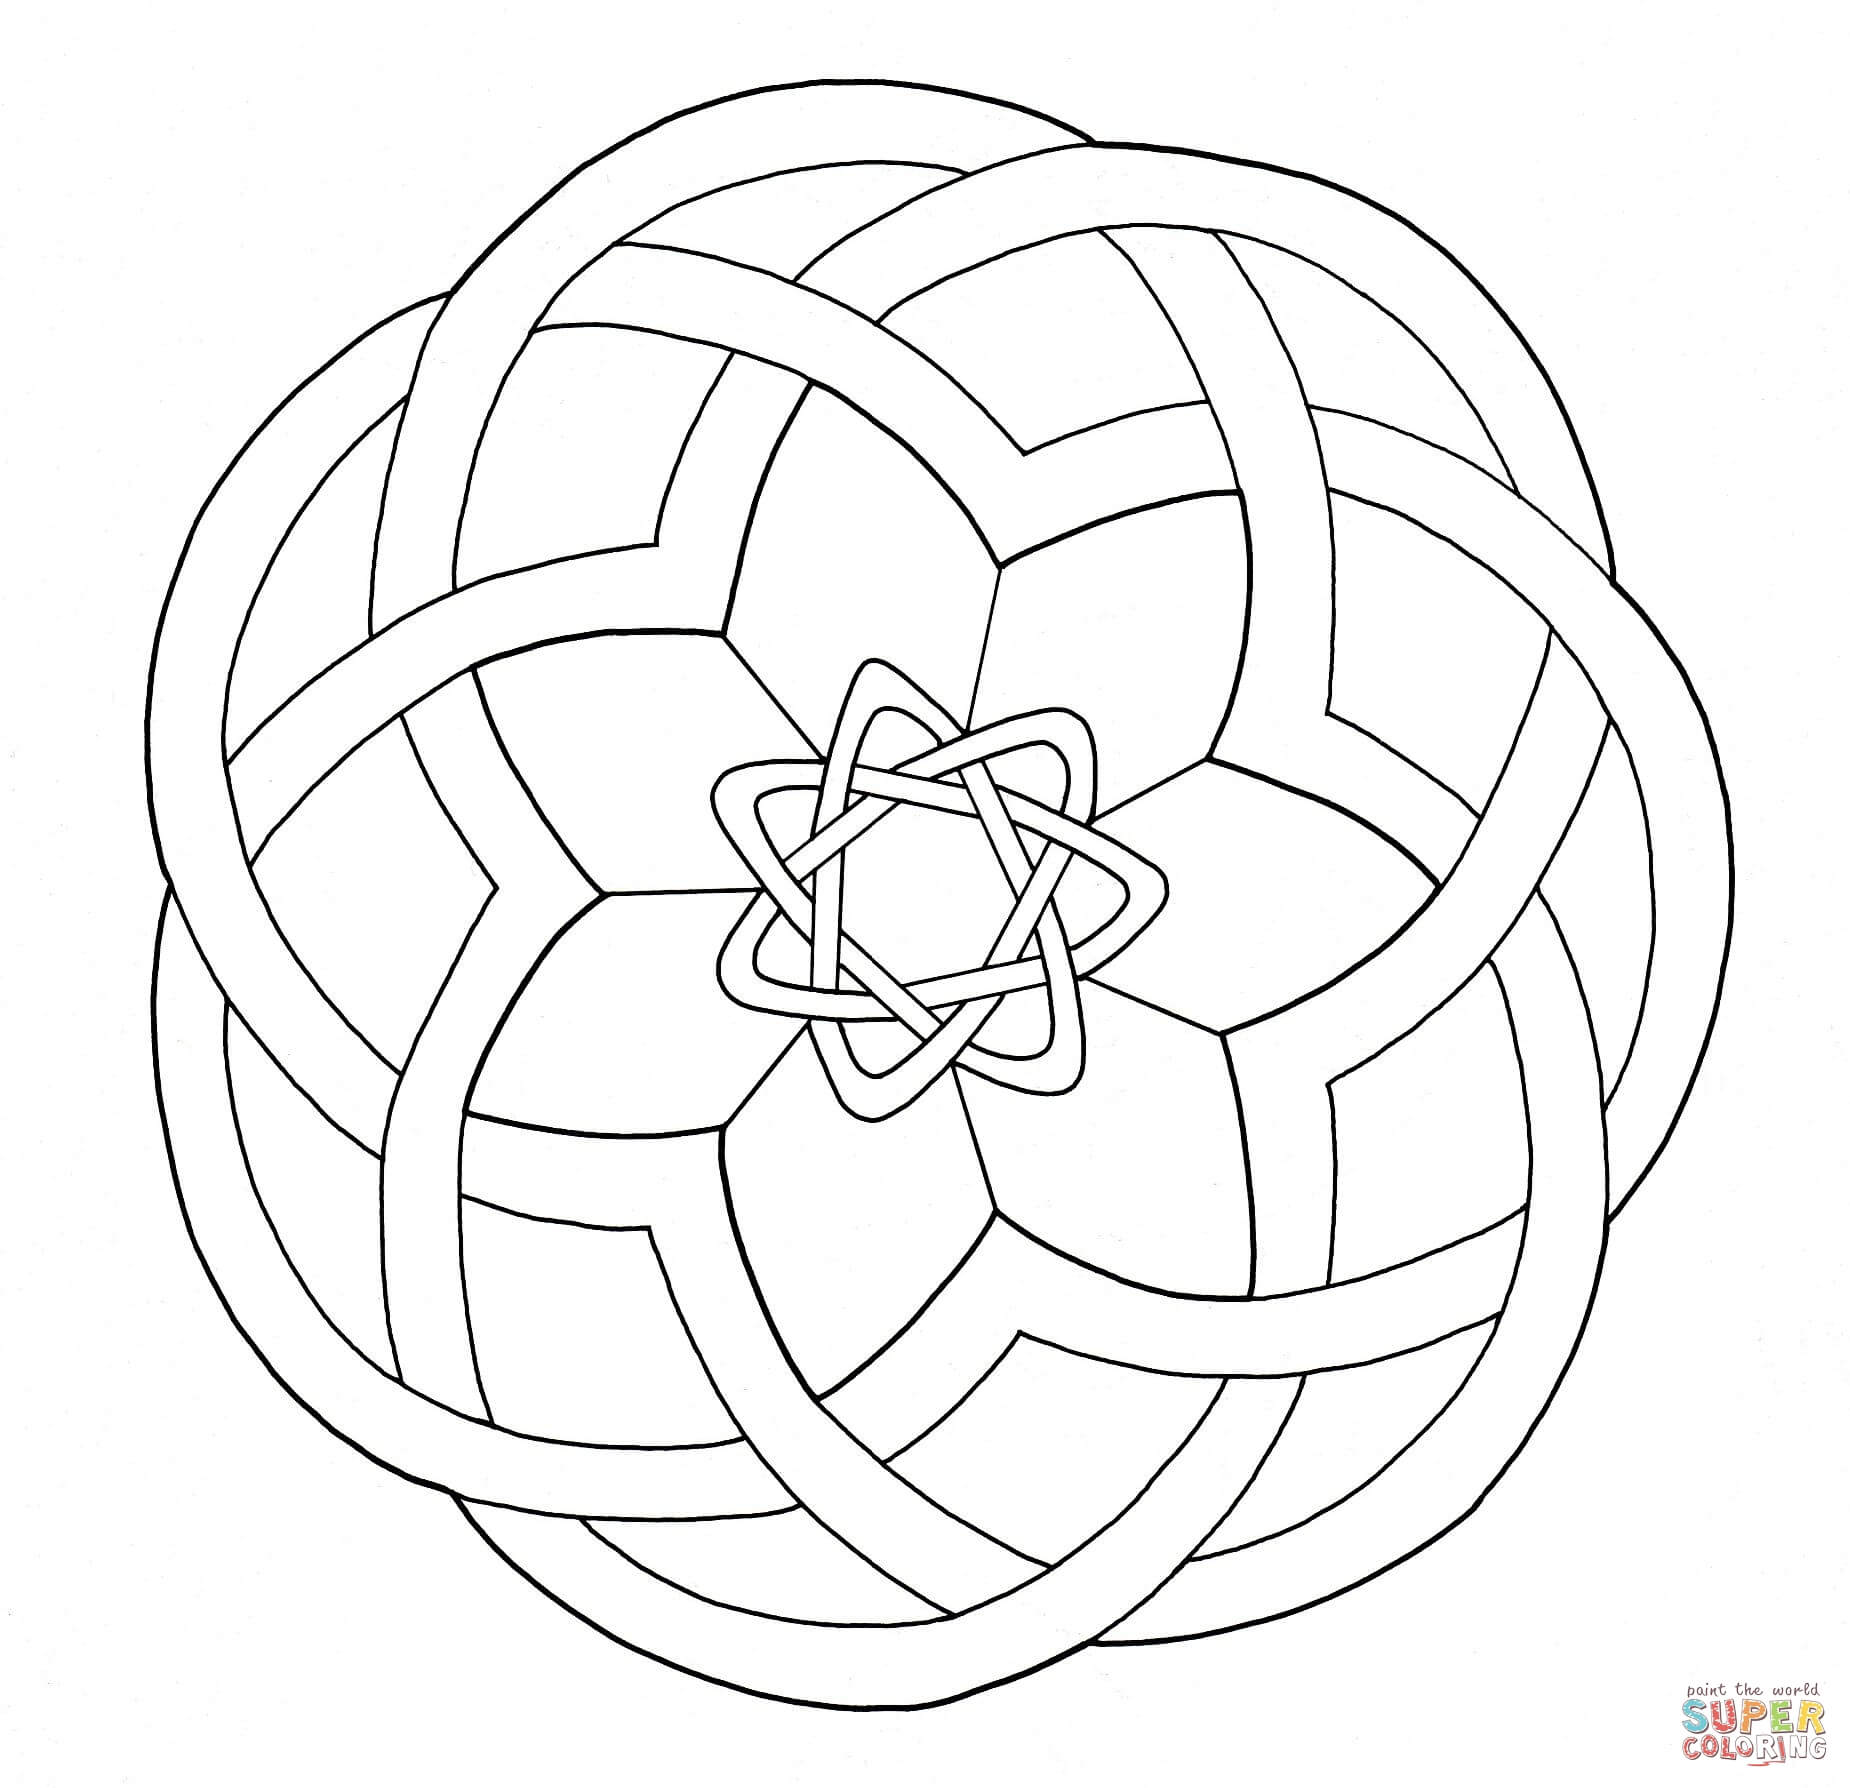 irish celtic bird coloring page celtic designs coloring pages. book ...